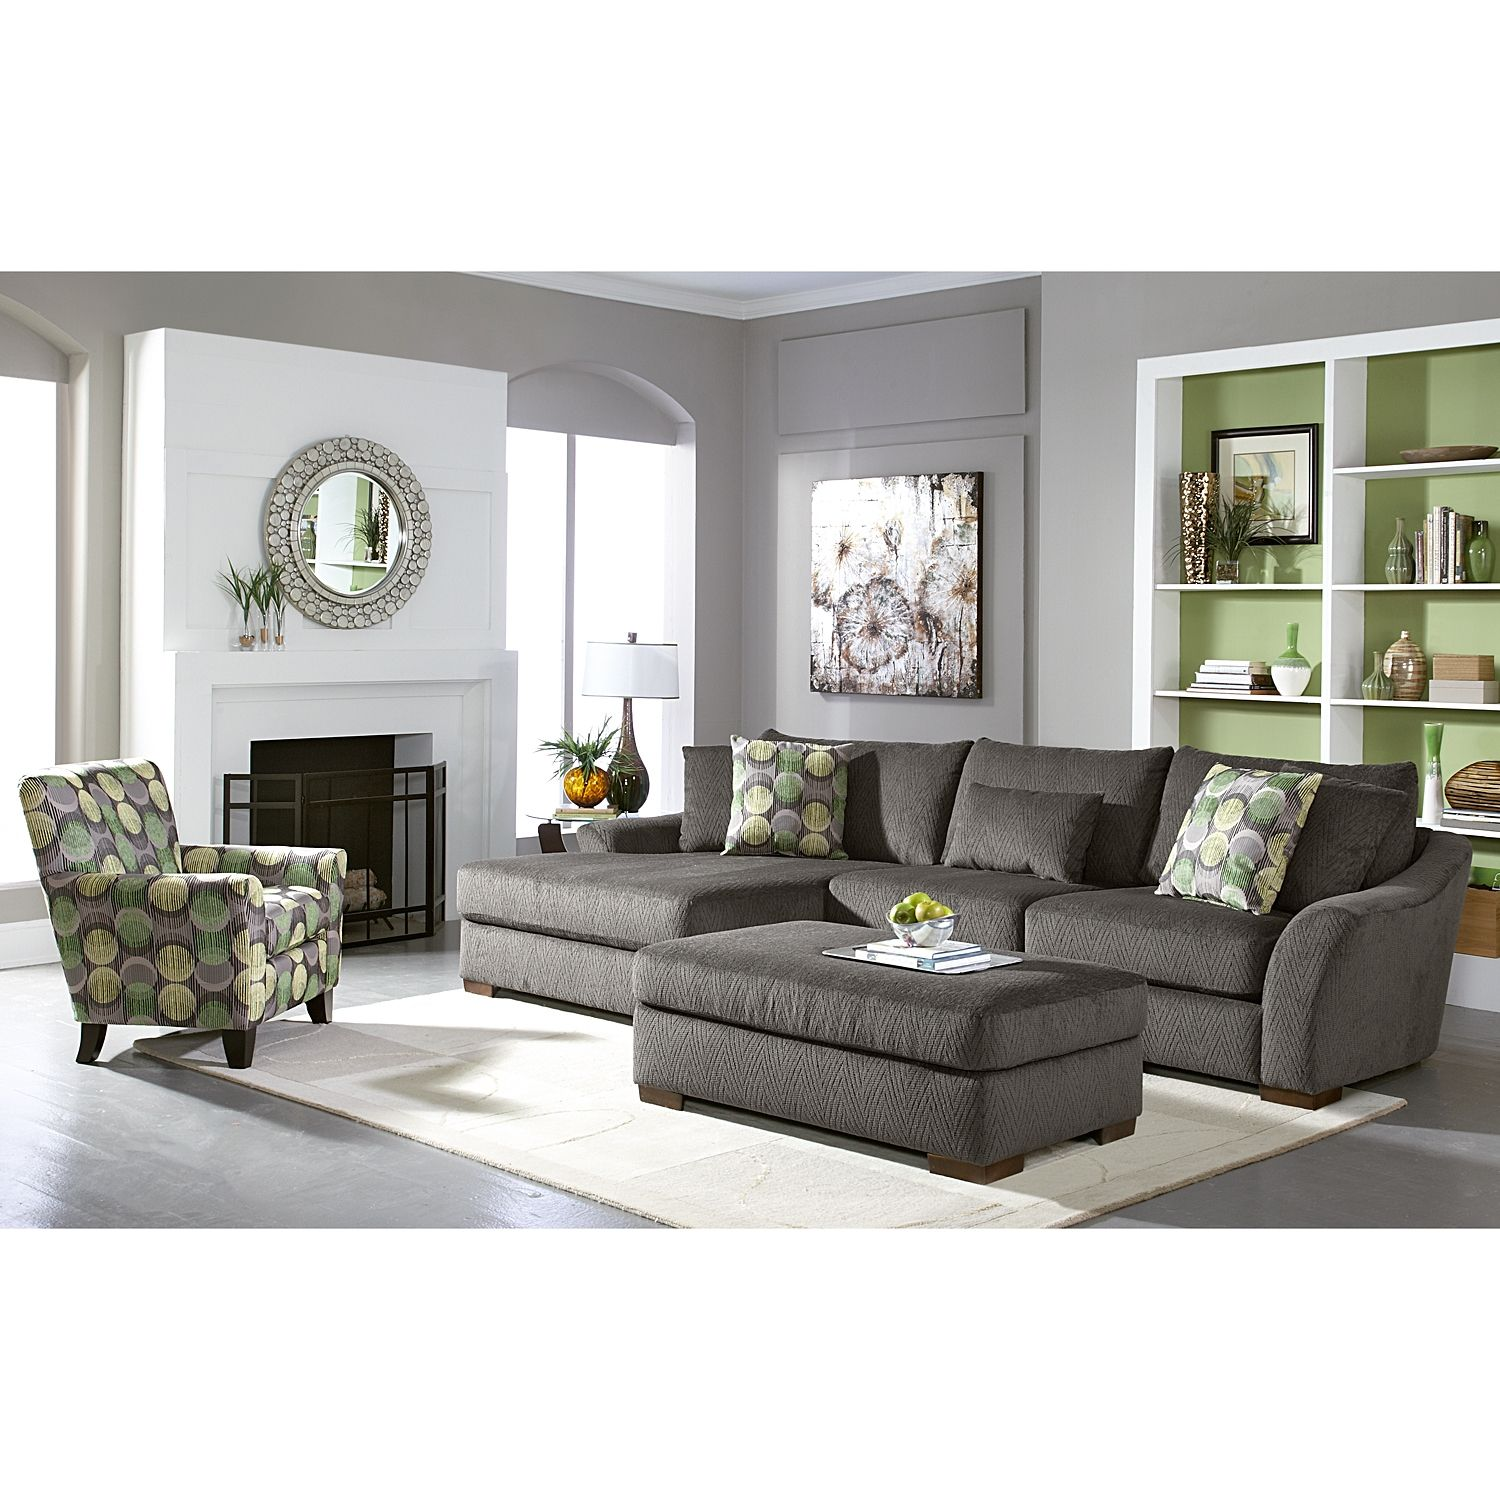 Oasis 2 Pc. Sectional | American Signature Furniture | Living ...